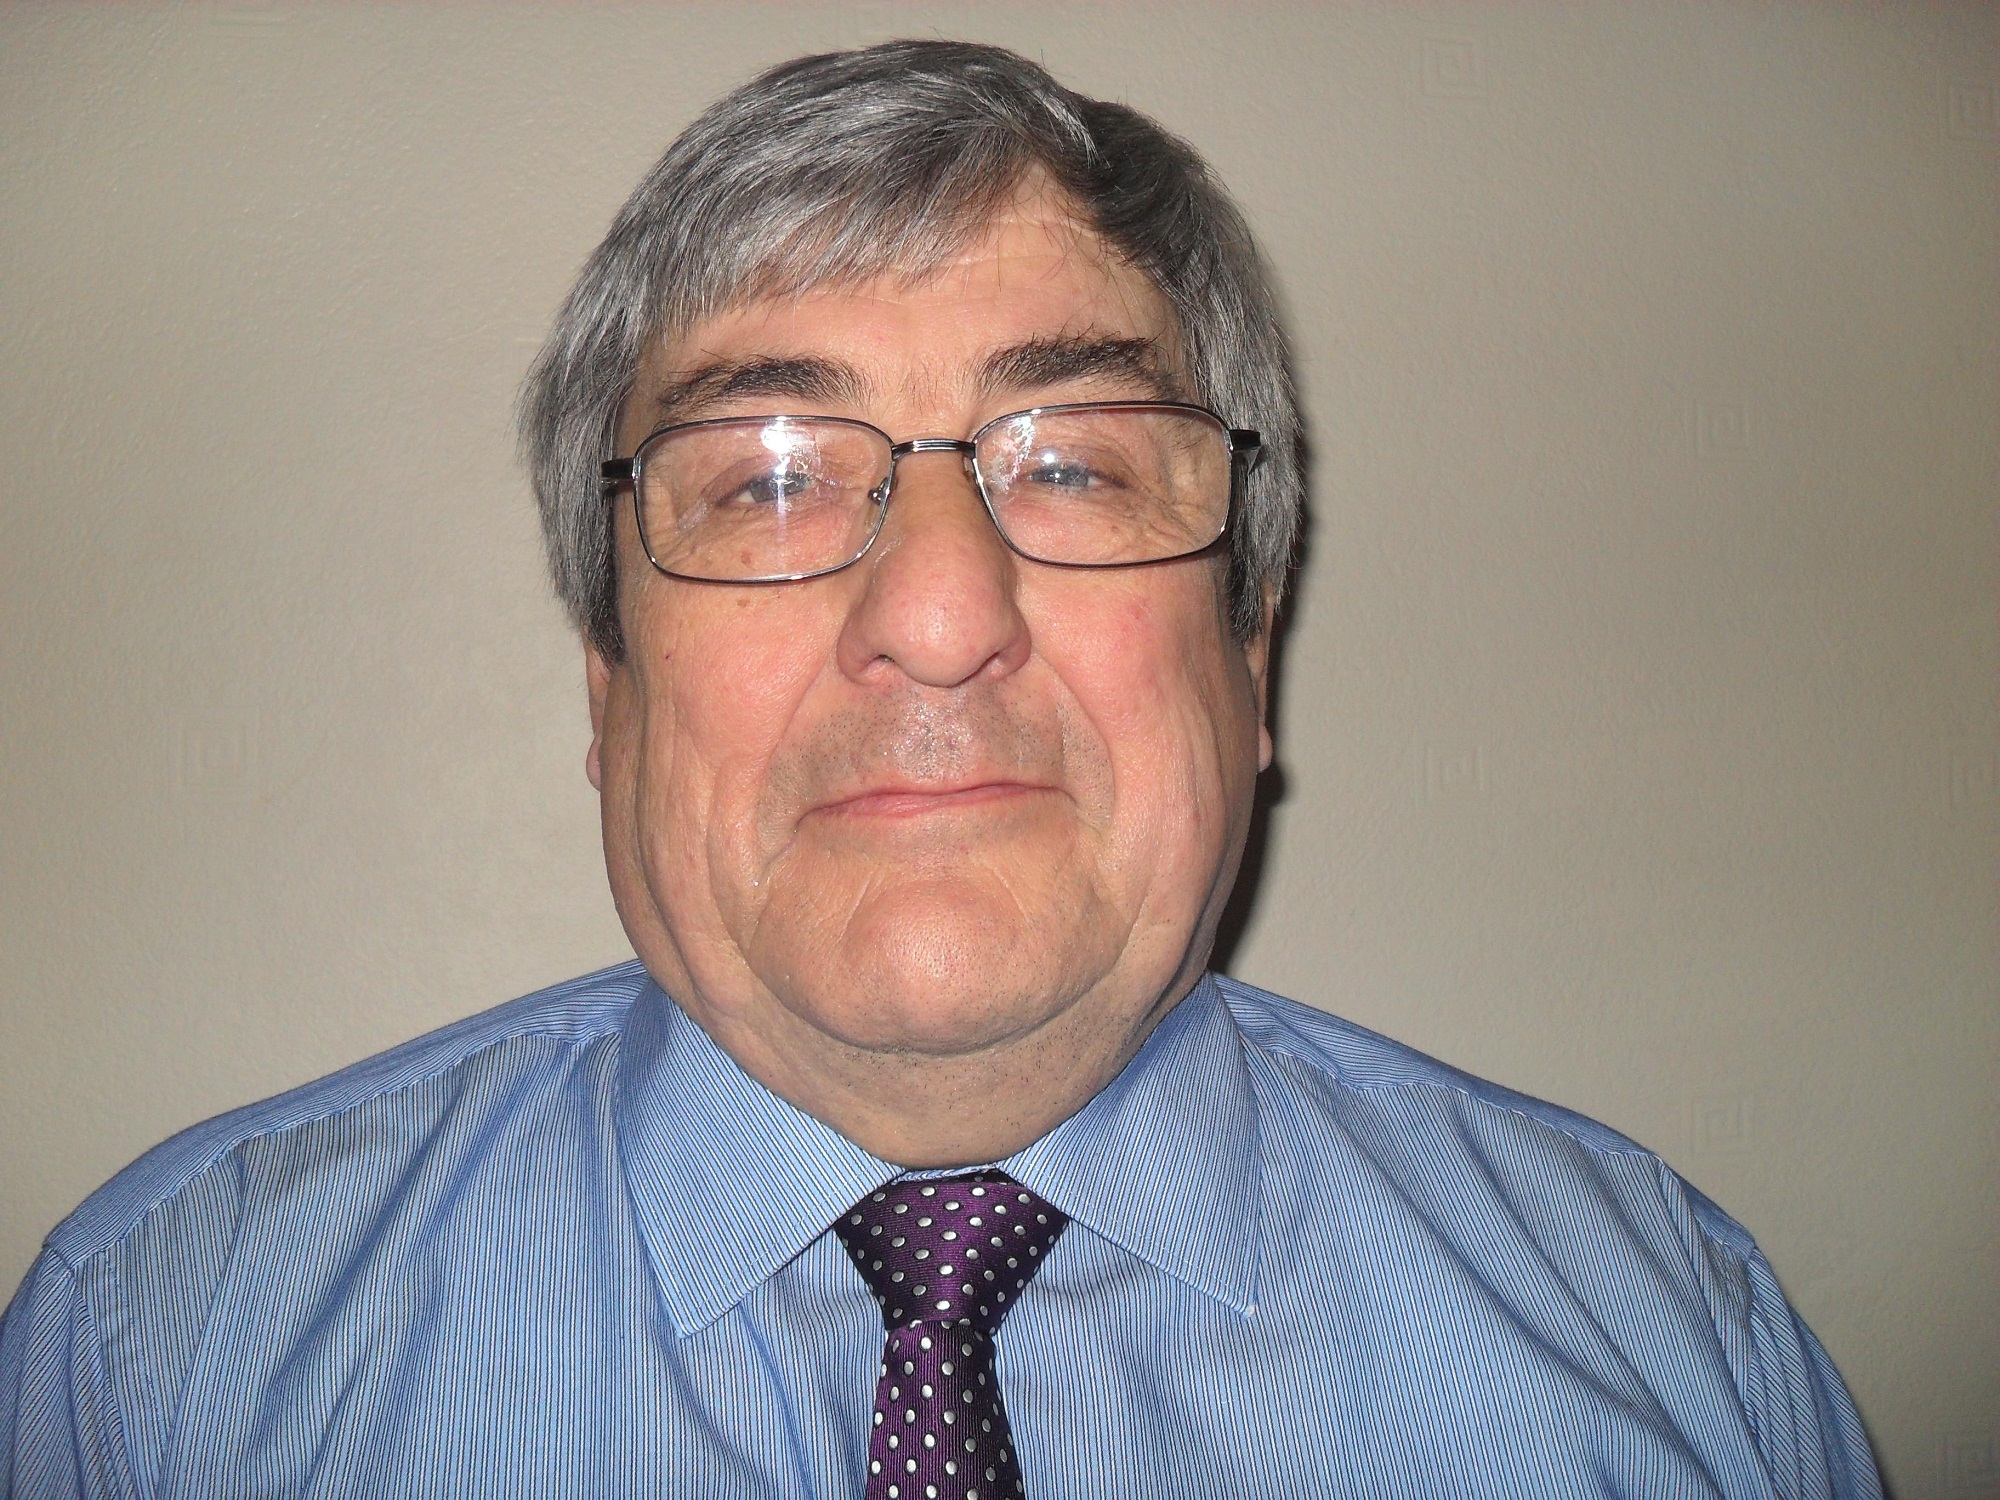 Councillor Peter Corkindale, who was among those questioning the Cavetown group's activities